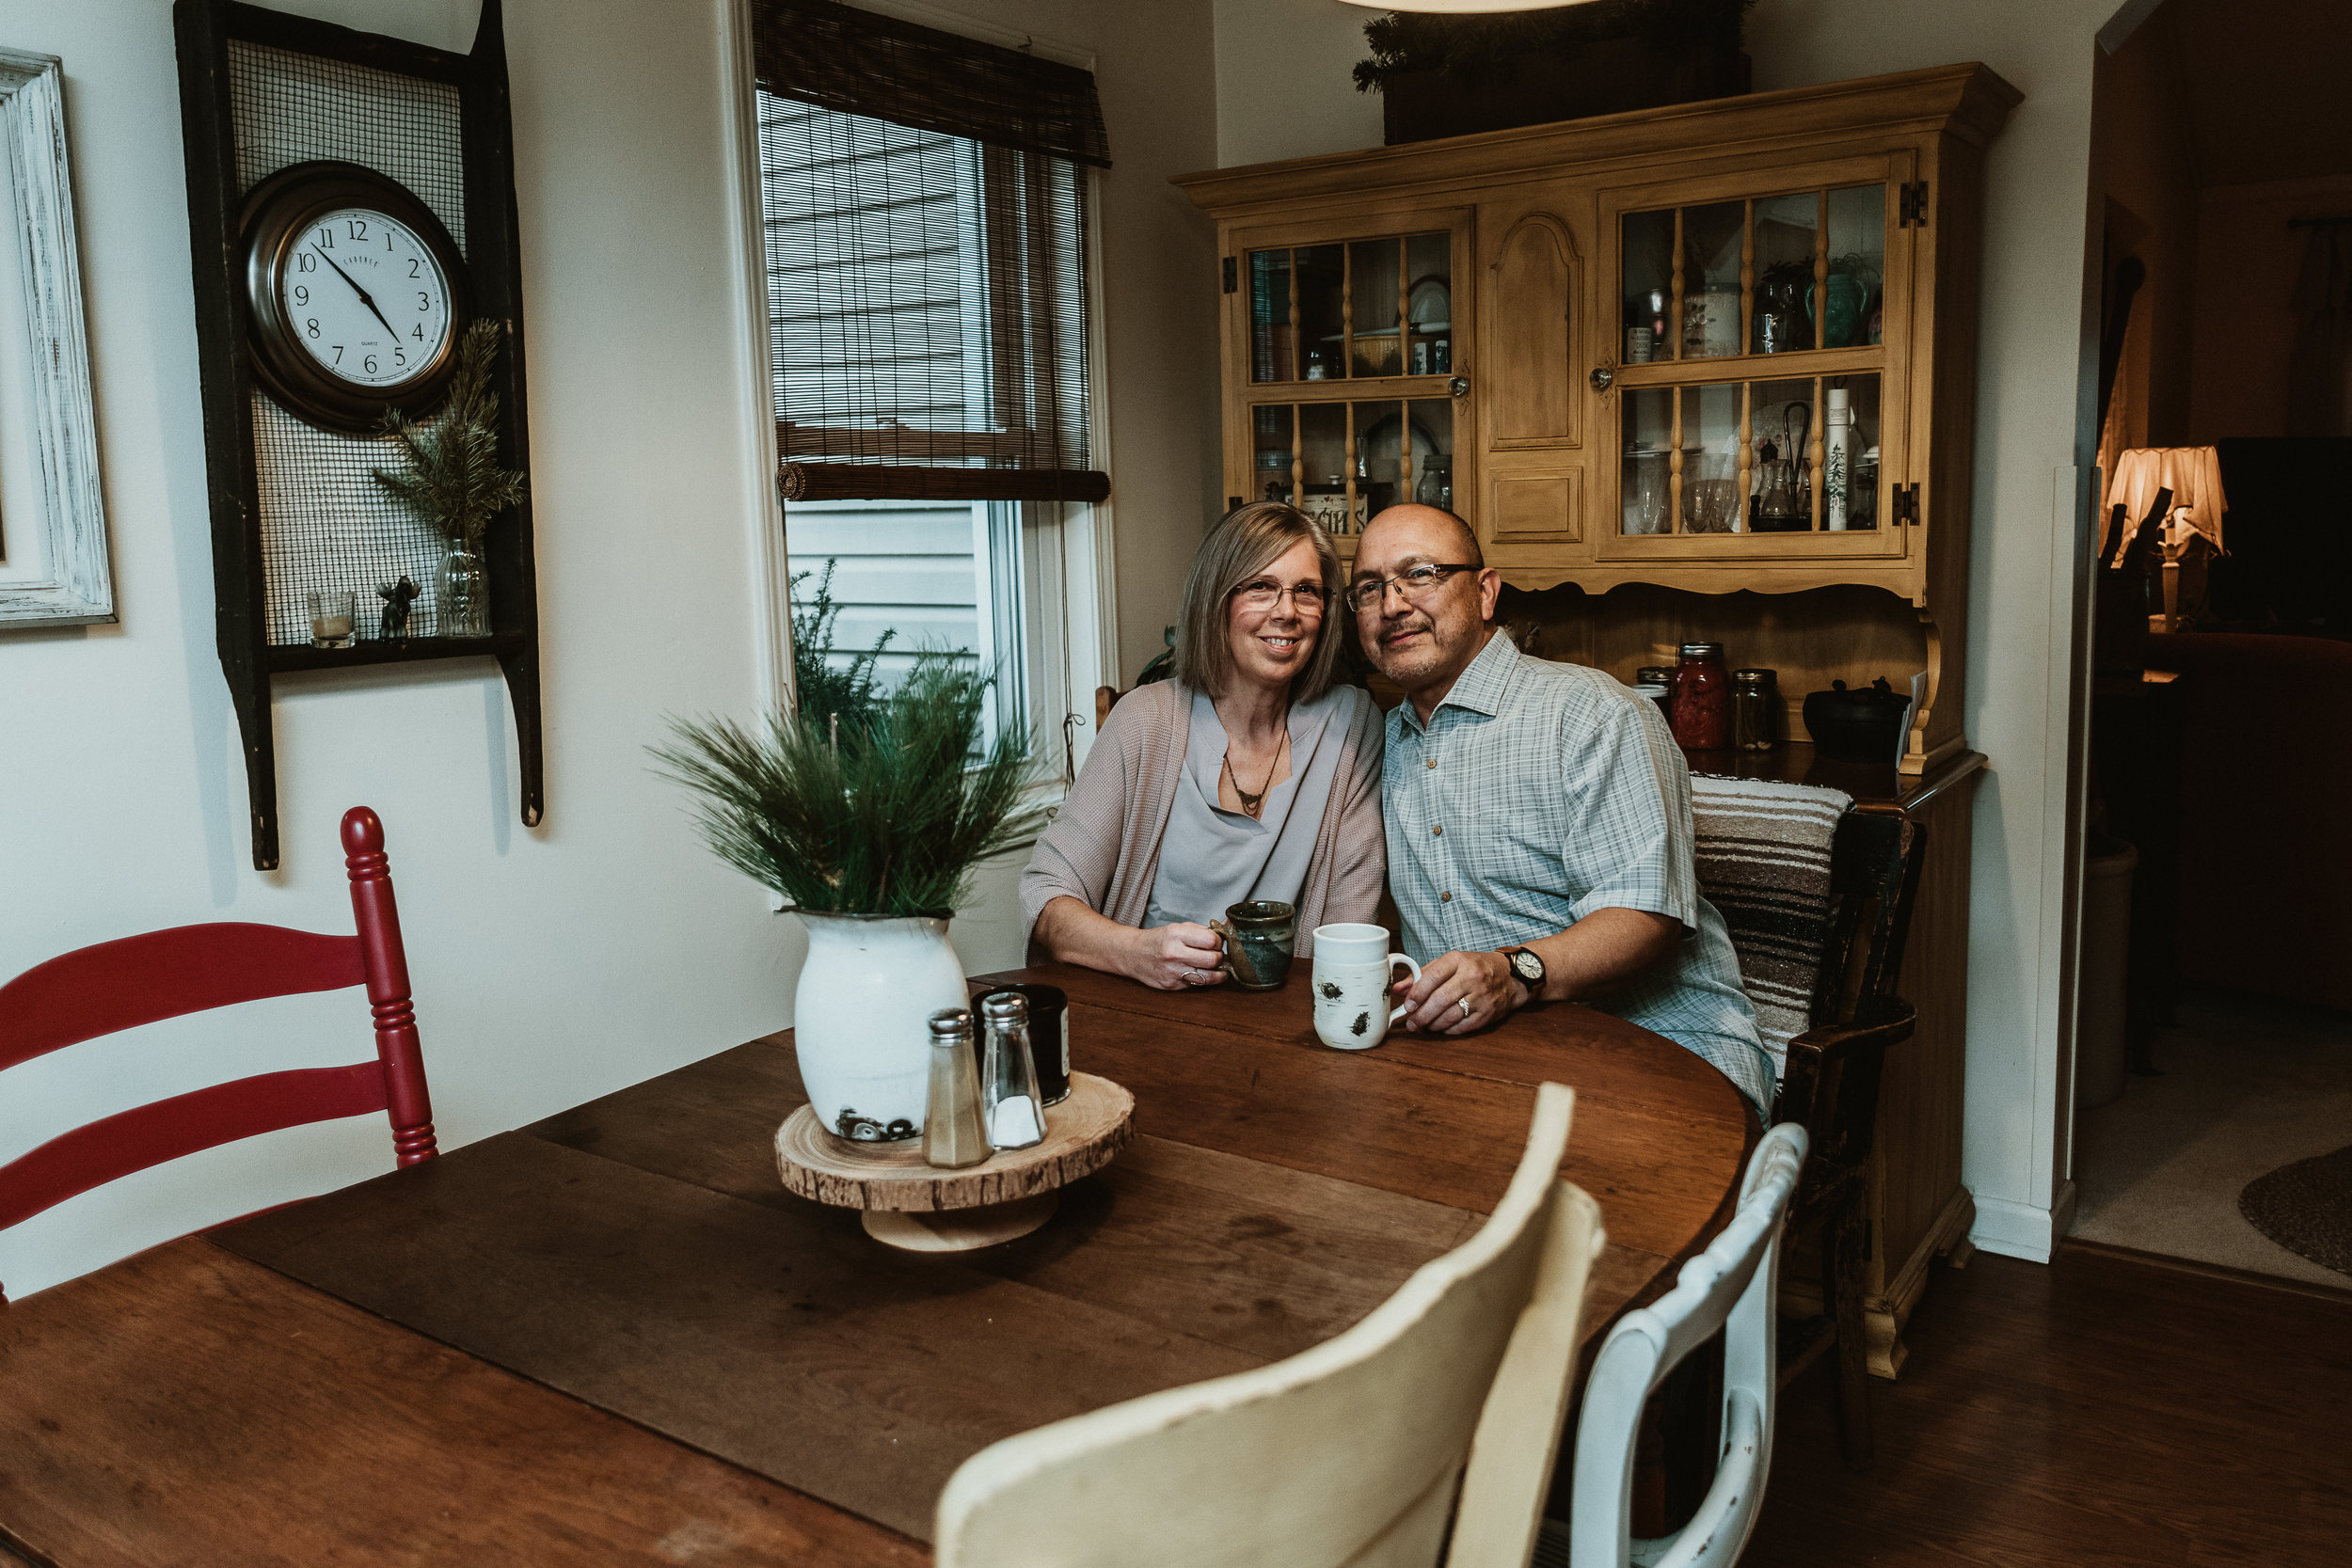 In Home Lifestyle Session | Anniversary Session | Farmhouse Photography | Documentary Photography | Vintage Rustic